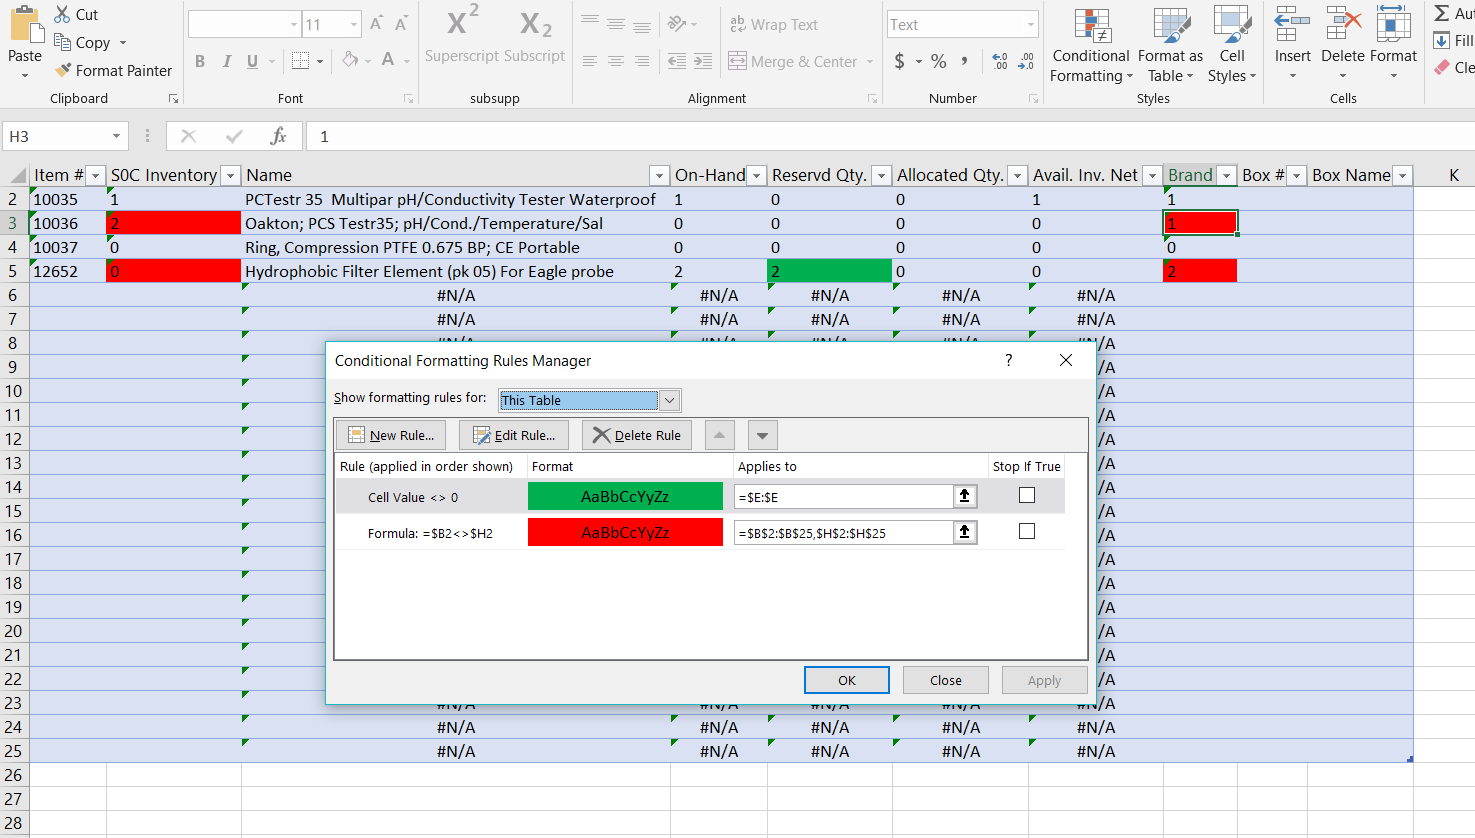 Conditional formatting not working properly as one of the ...